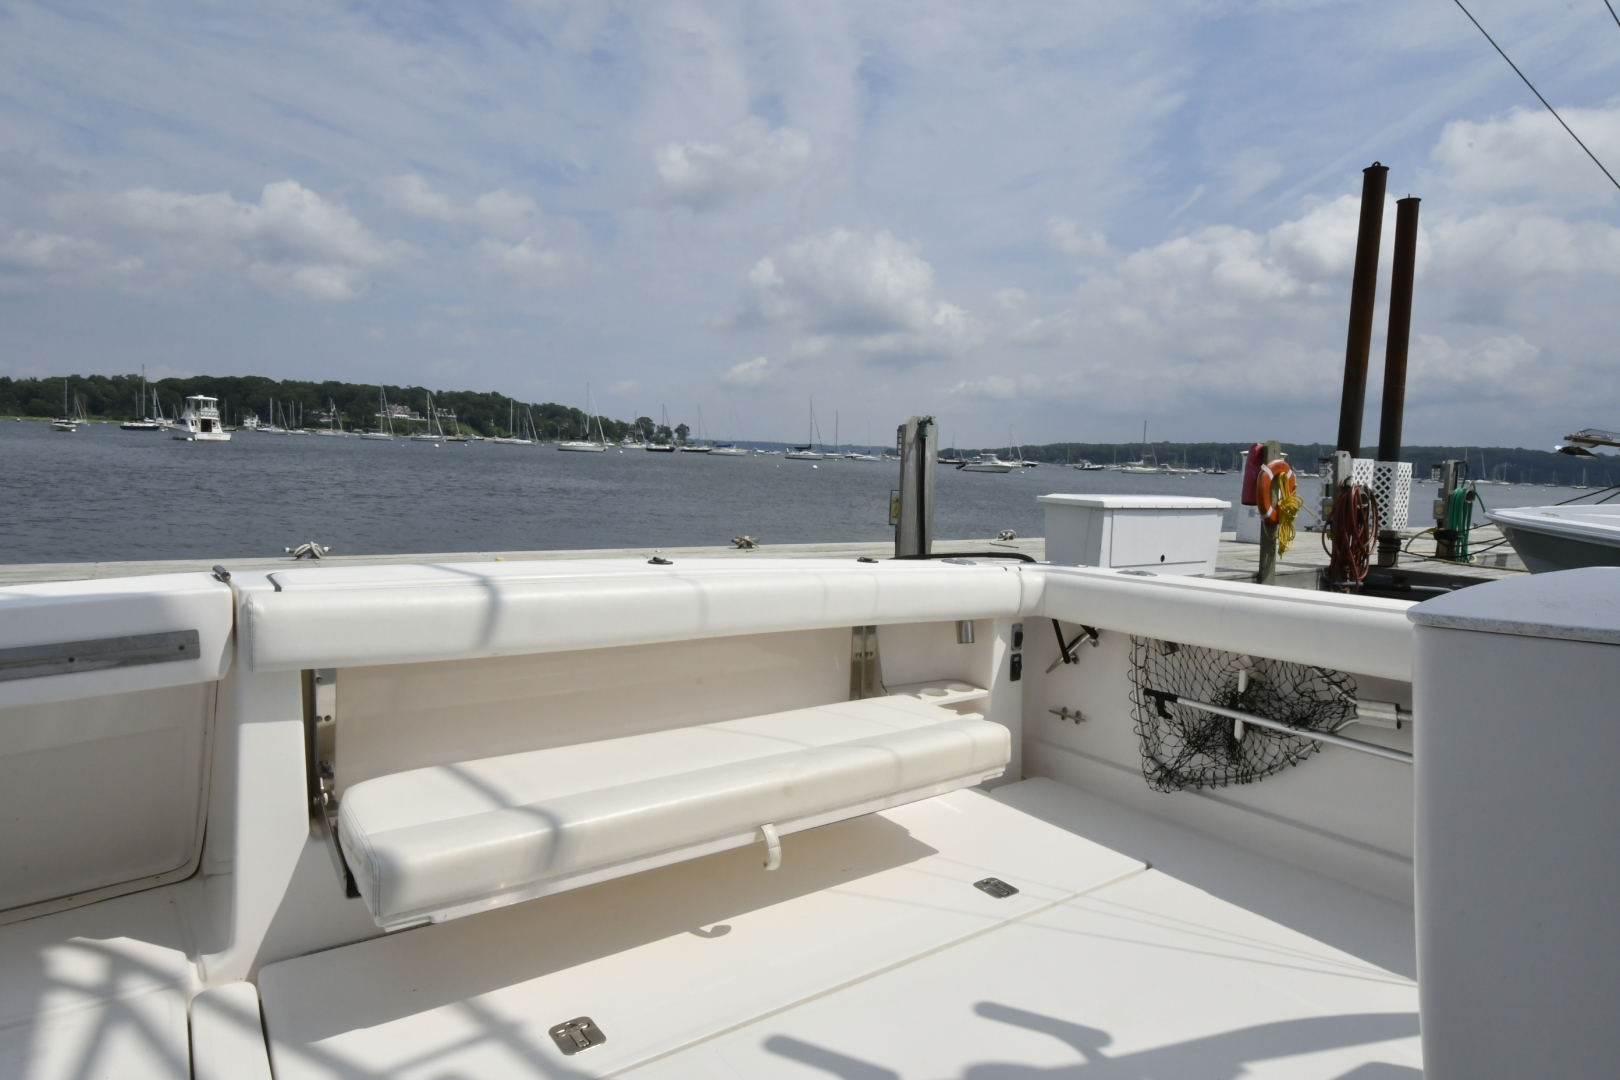 Tiara-3800 Open 2003-Catch 22 Oyster Bay-New York-United States-Cockpit Fold Out Bench-1224909 | Thumbnail